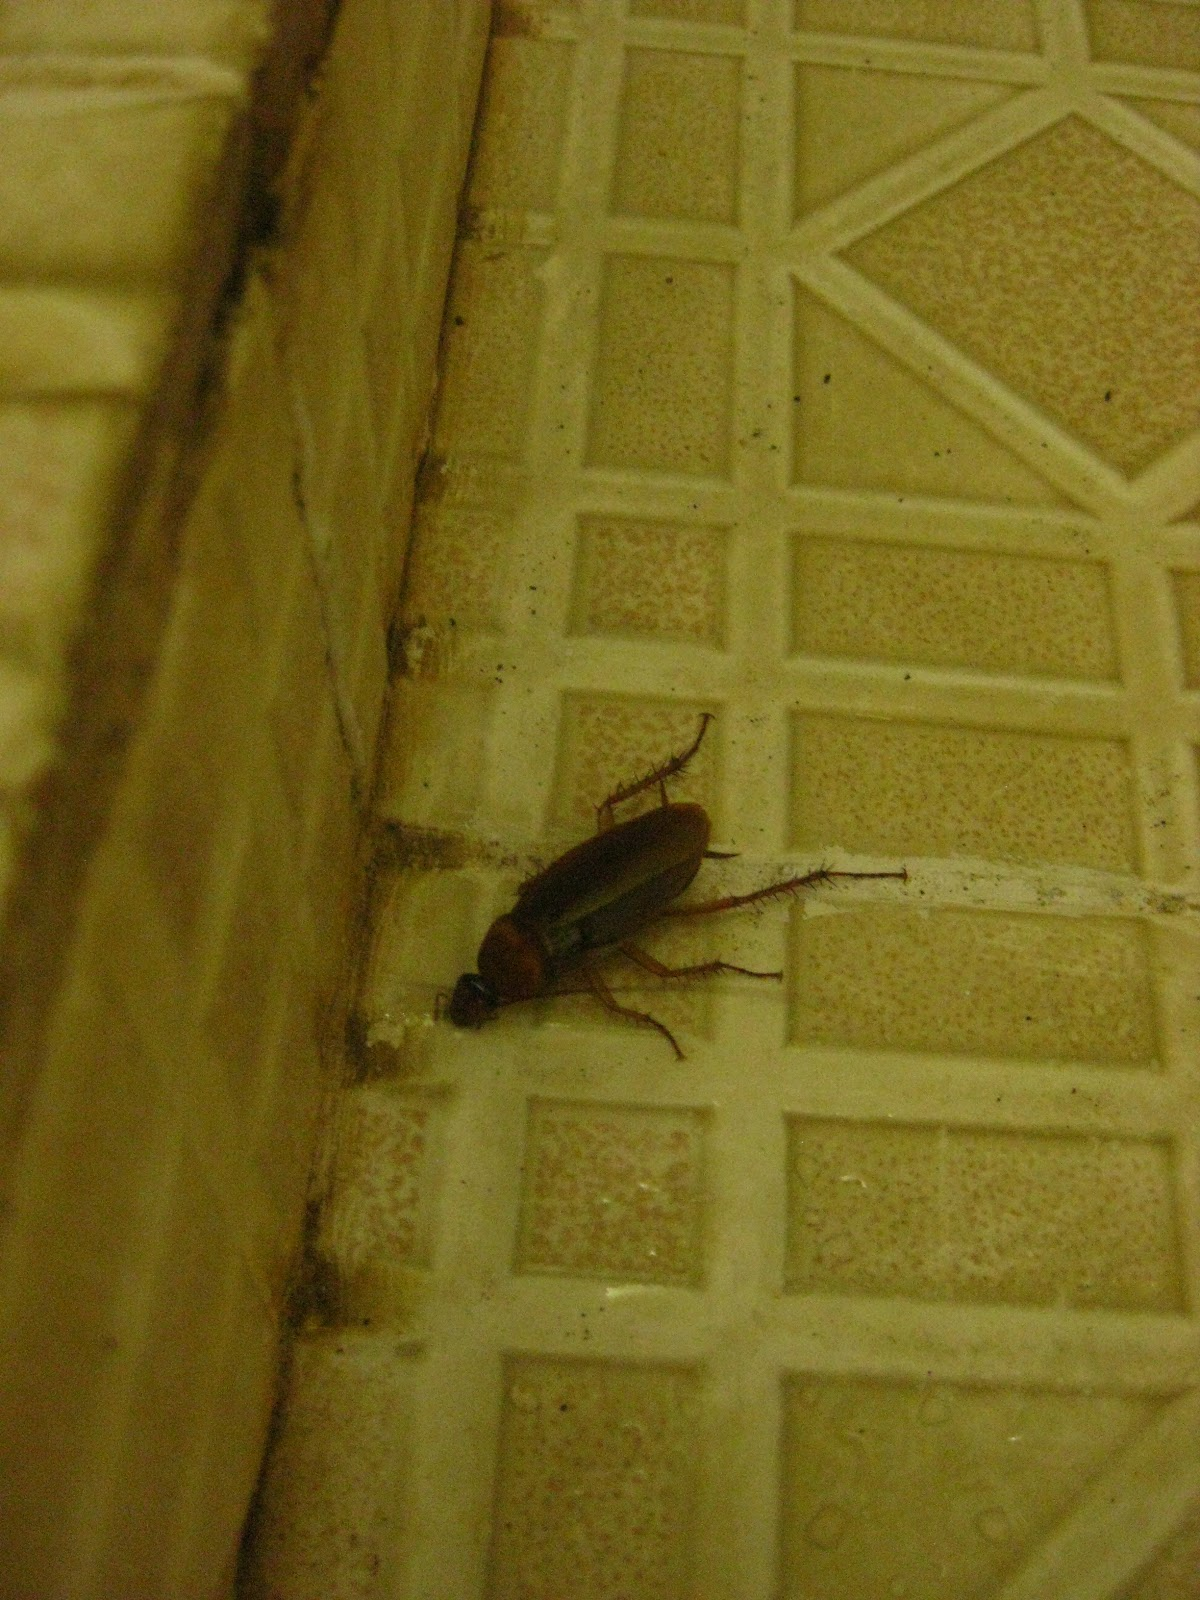 Baby Cockroach Vs Bed Bug : Displaying 19> Images For Baby Cockroach Vs Bed Bug